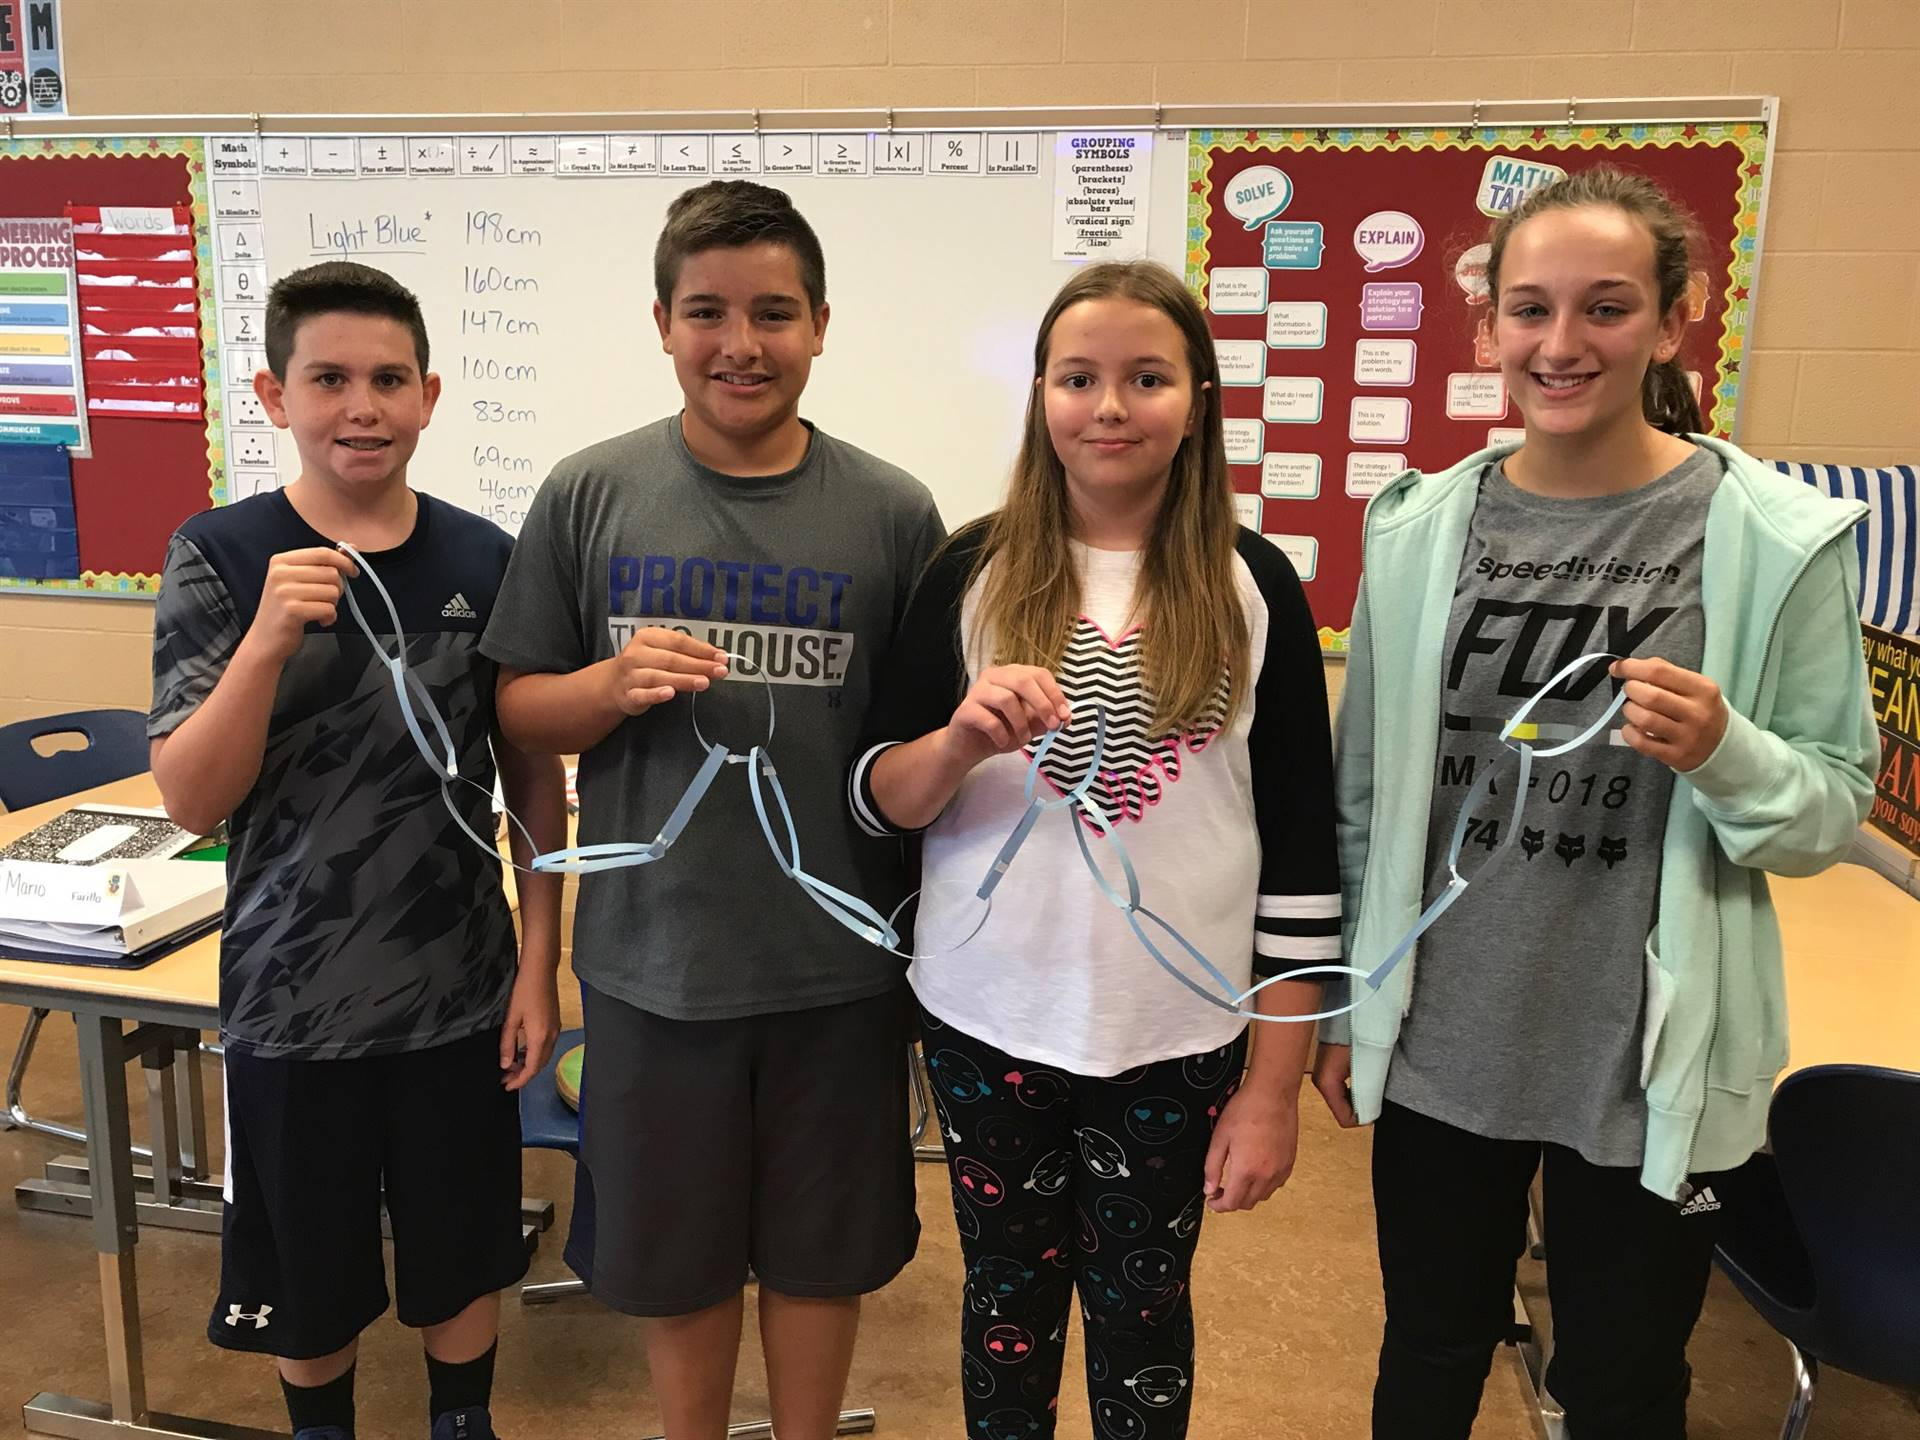 Miss Rodgers 7th grade paper chain activity winners